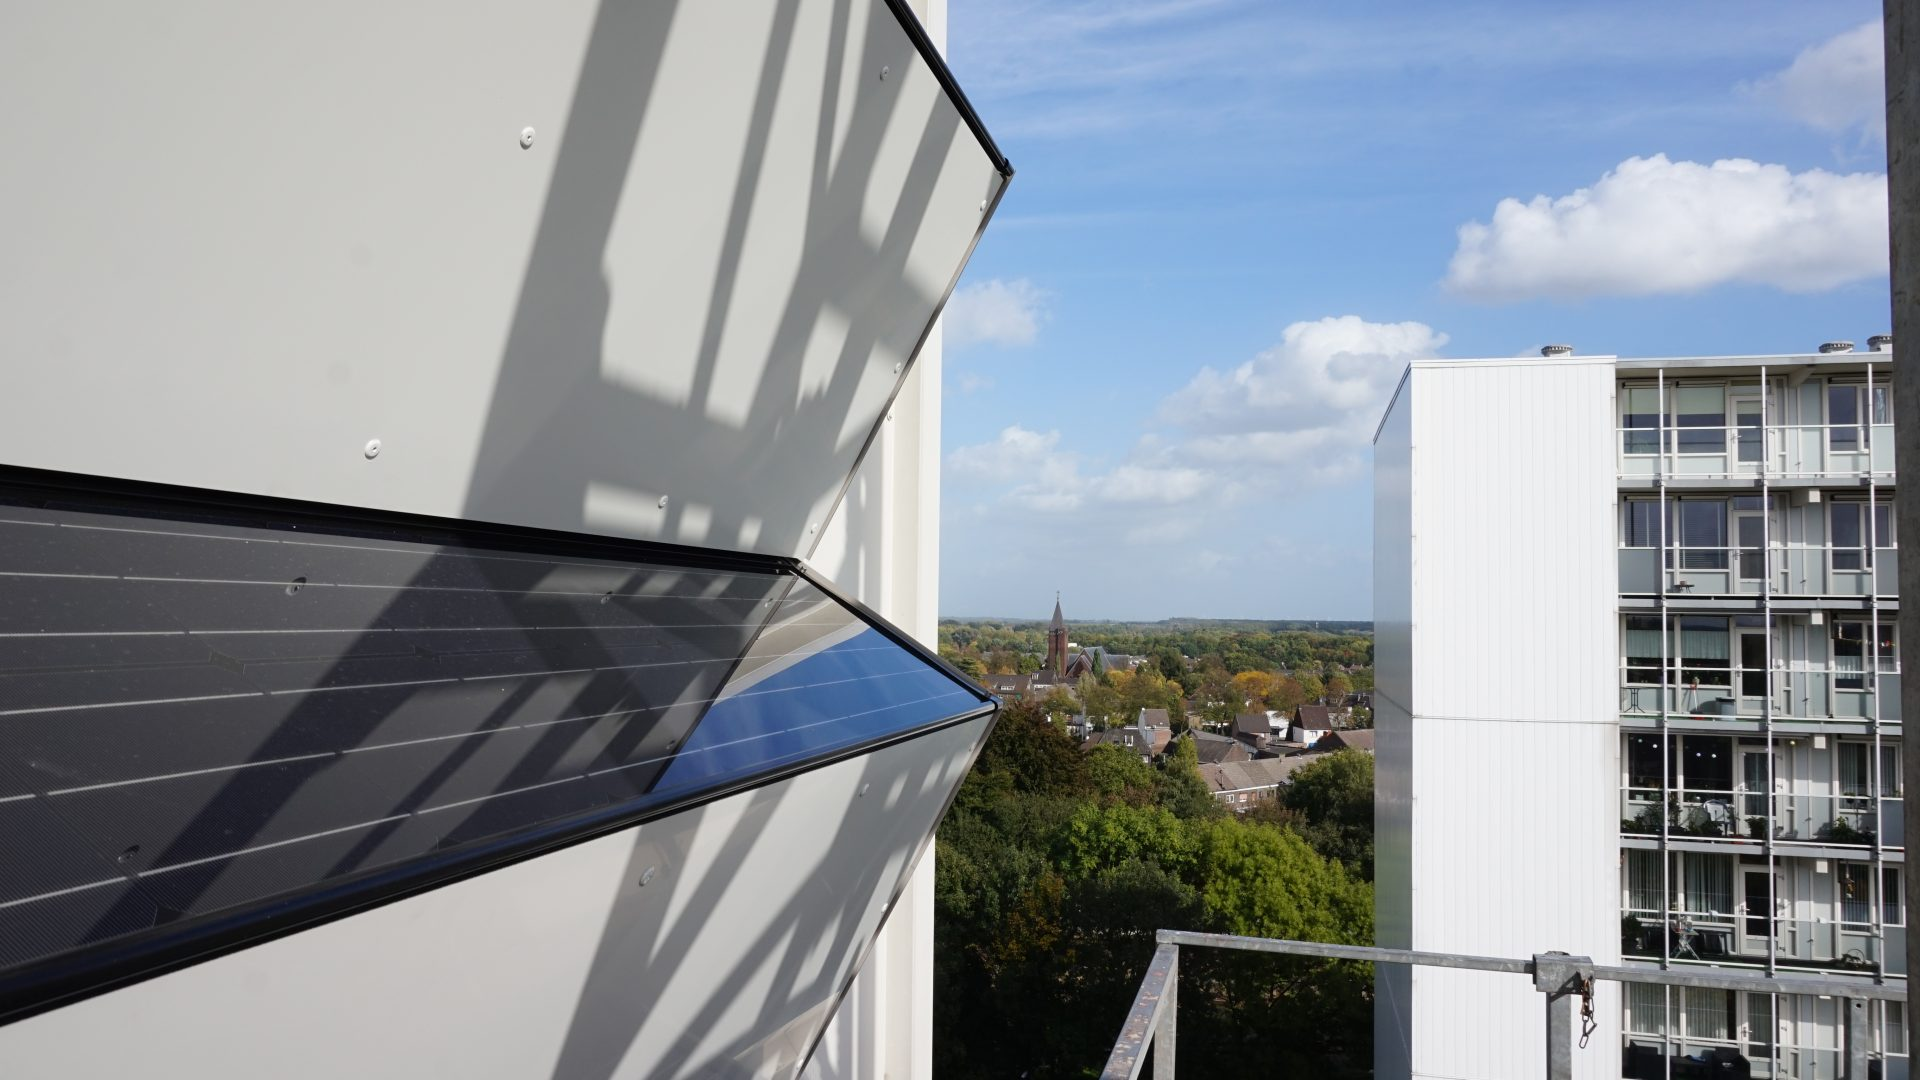 slideshow_ZigZagSolar BIPV gevel